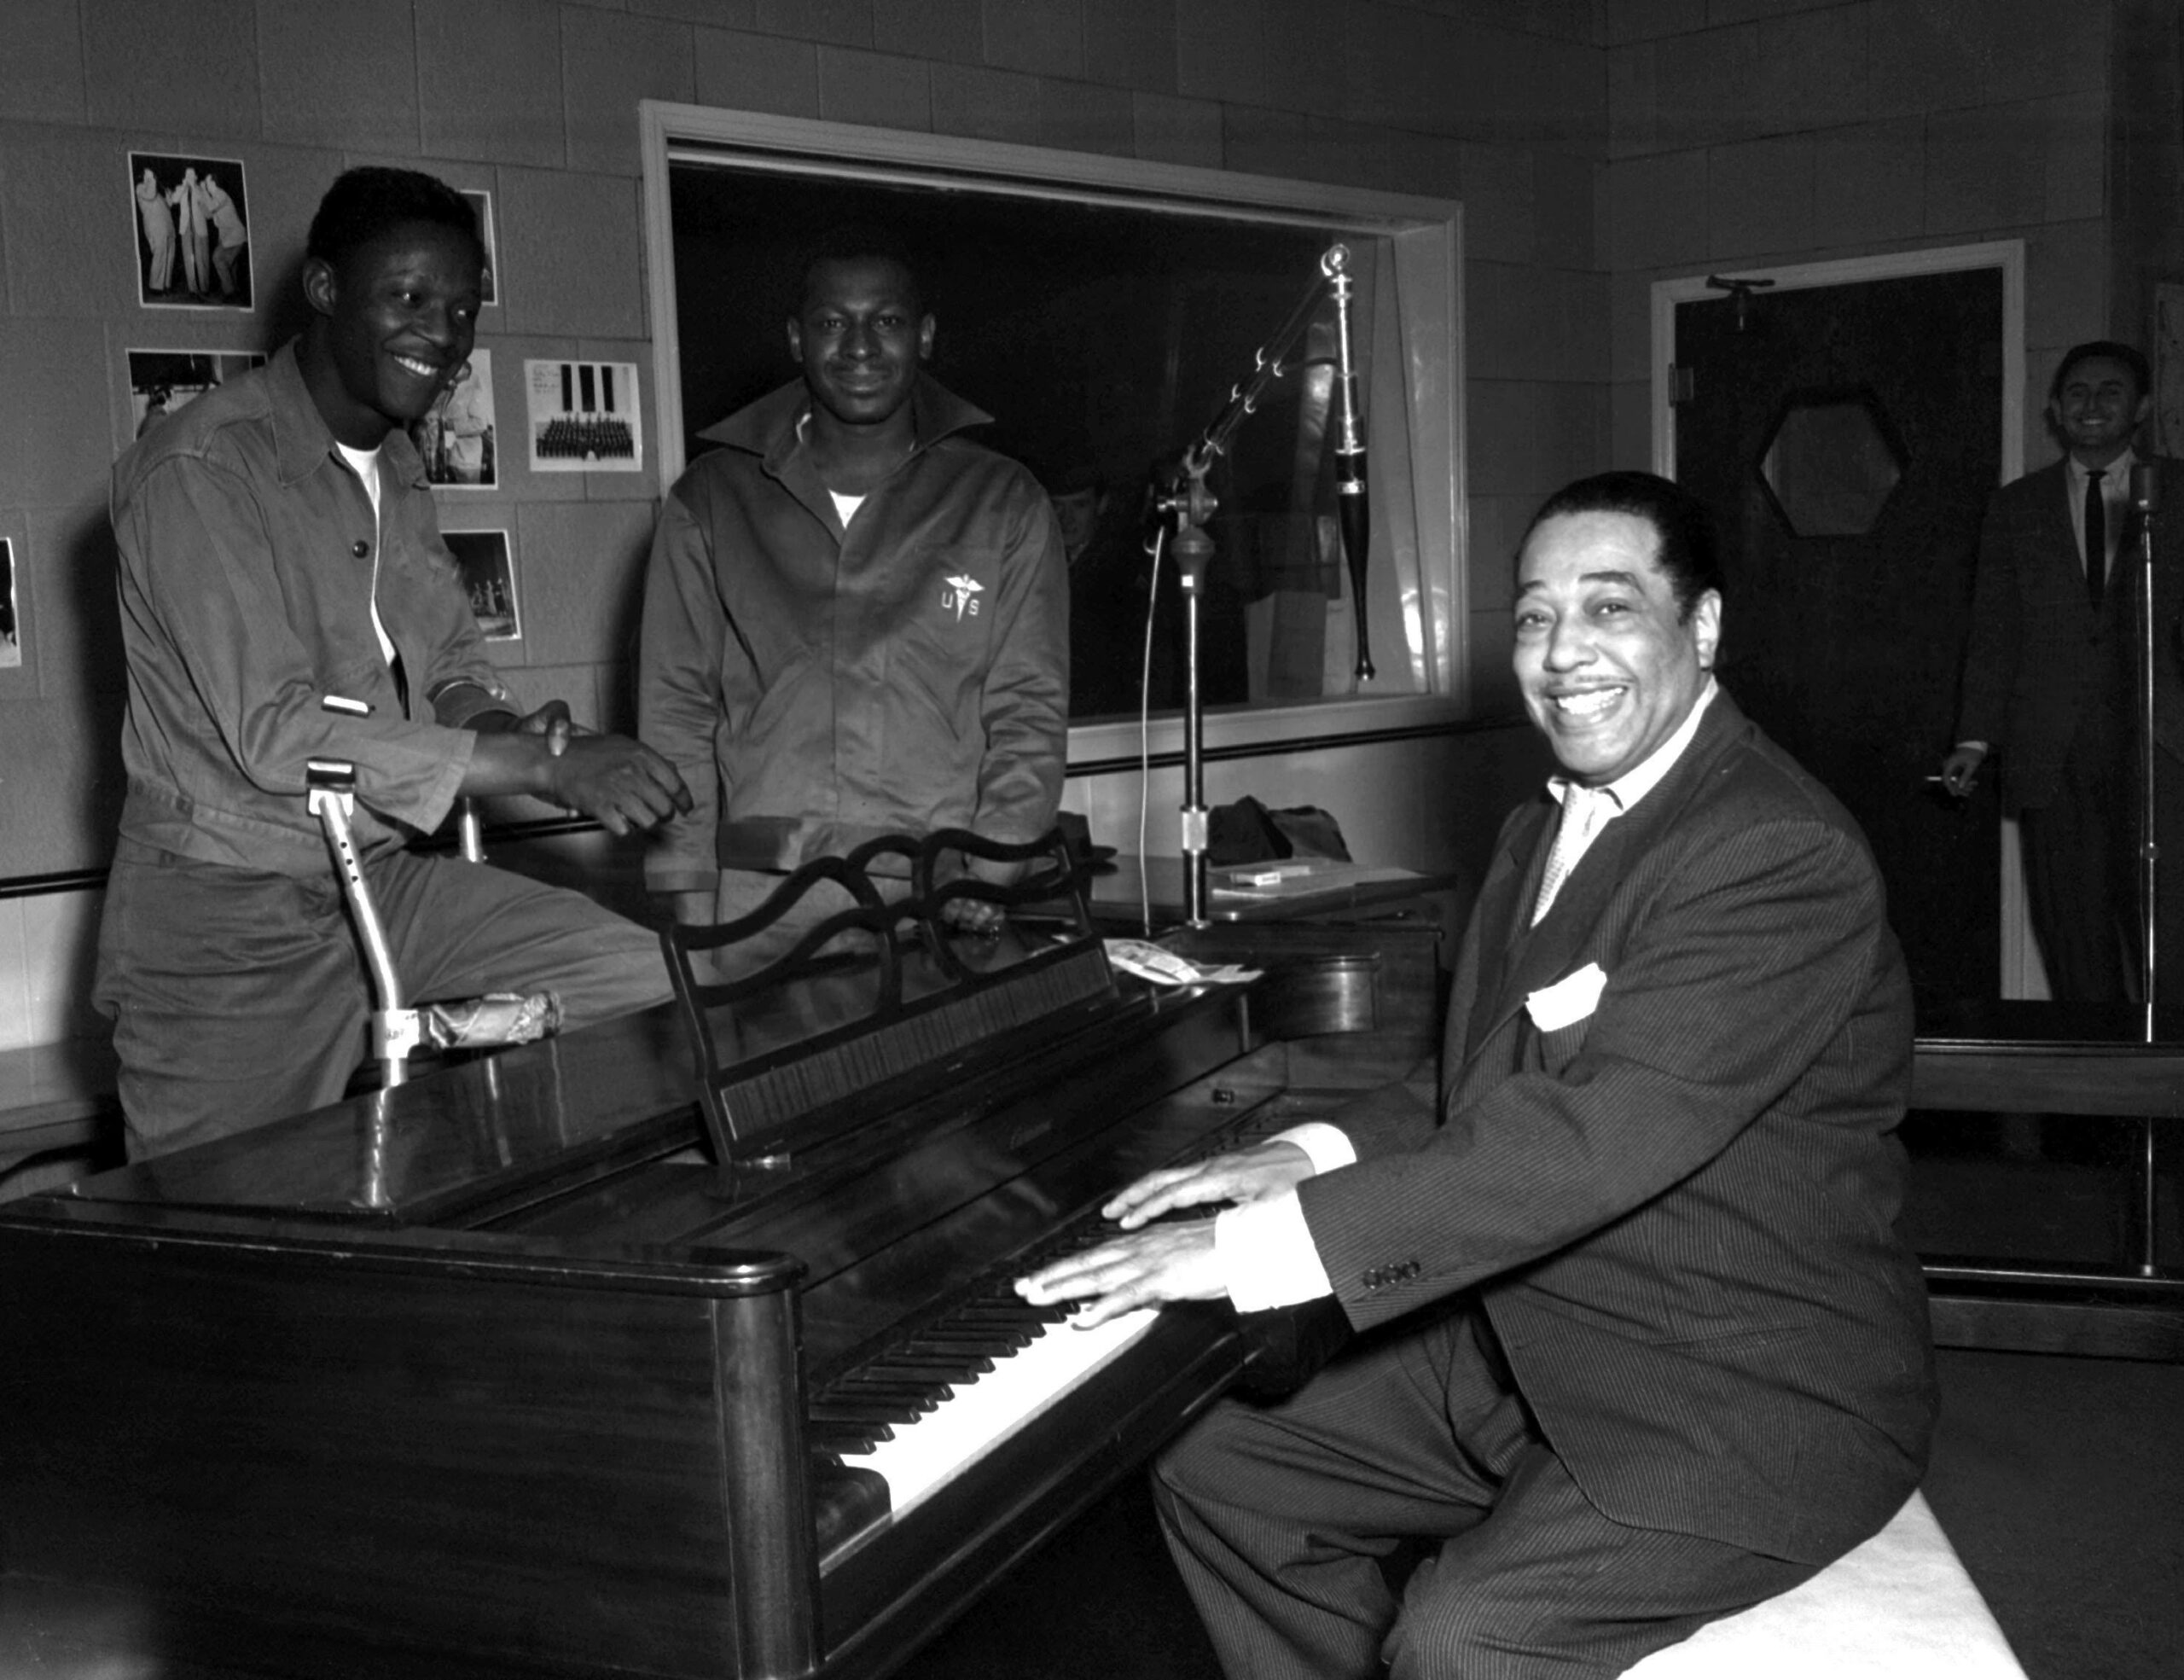 THE TRAVELING JAZZ CULTURE: A BRIEF HISTORY